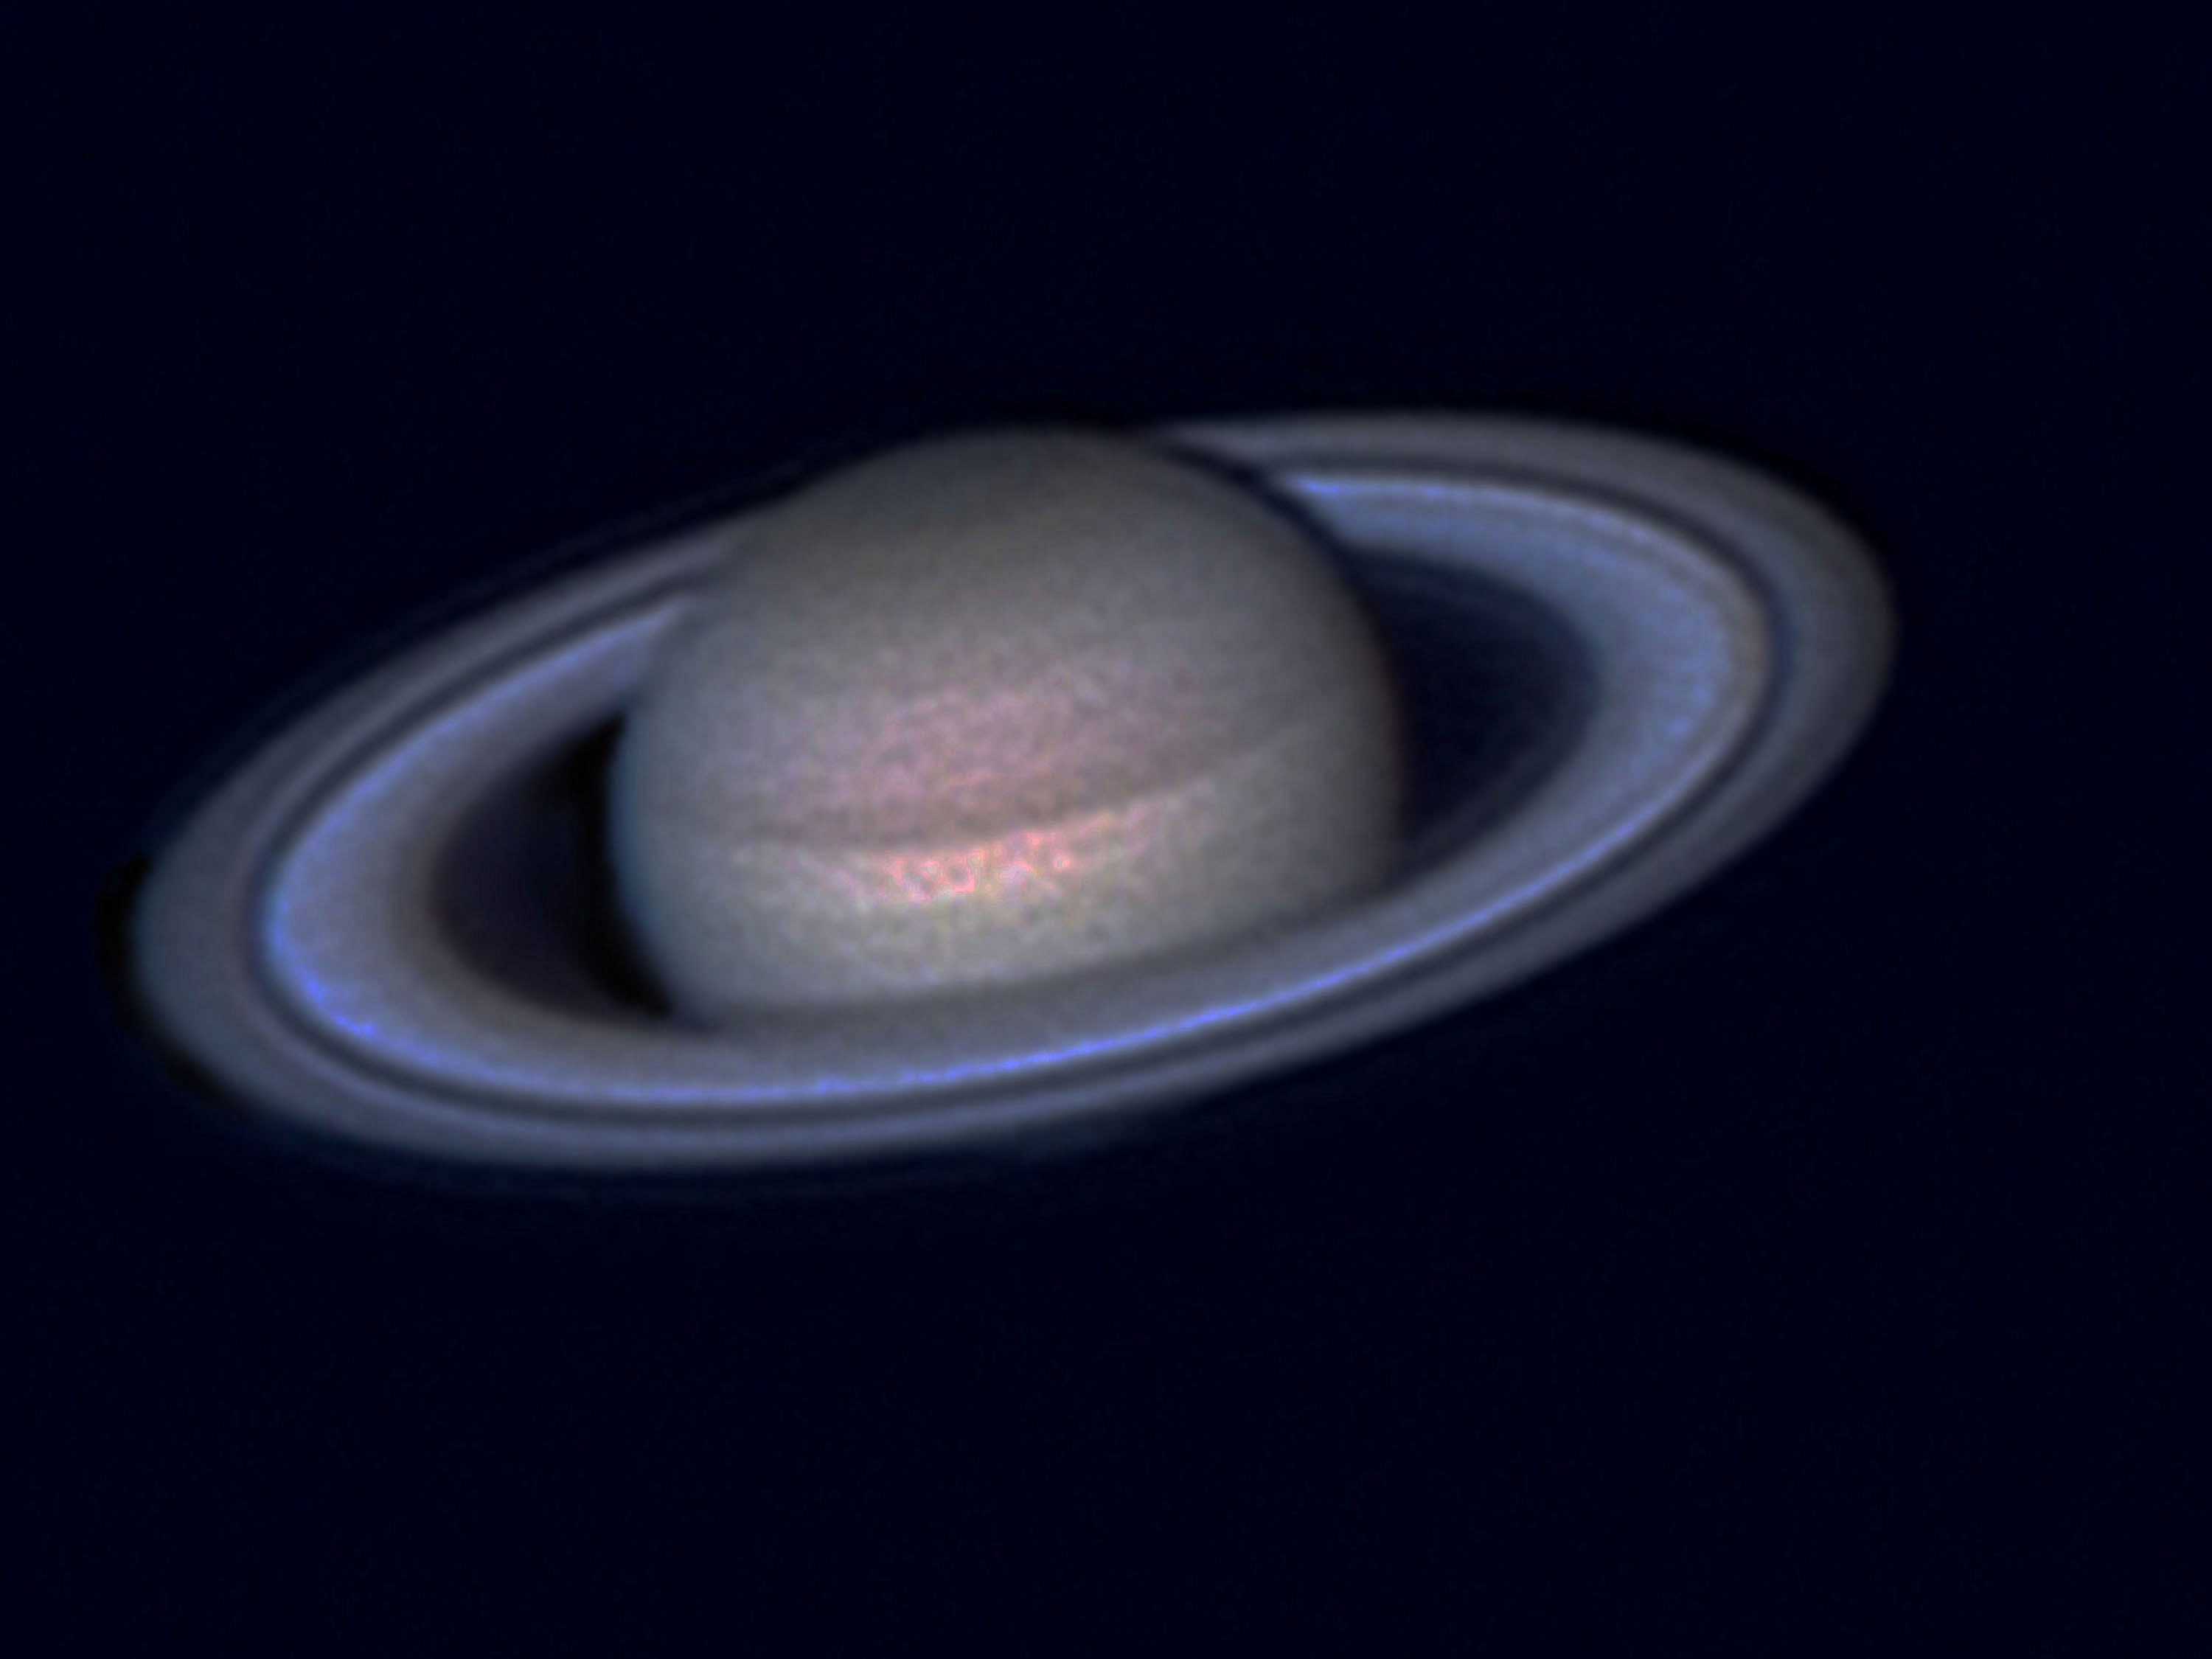 Saturn as it appears through a telescope